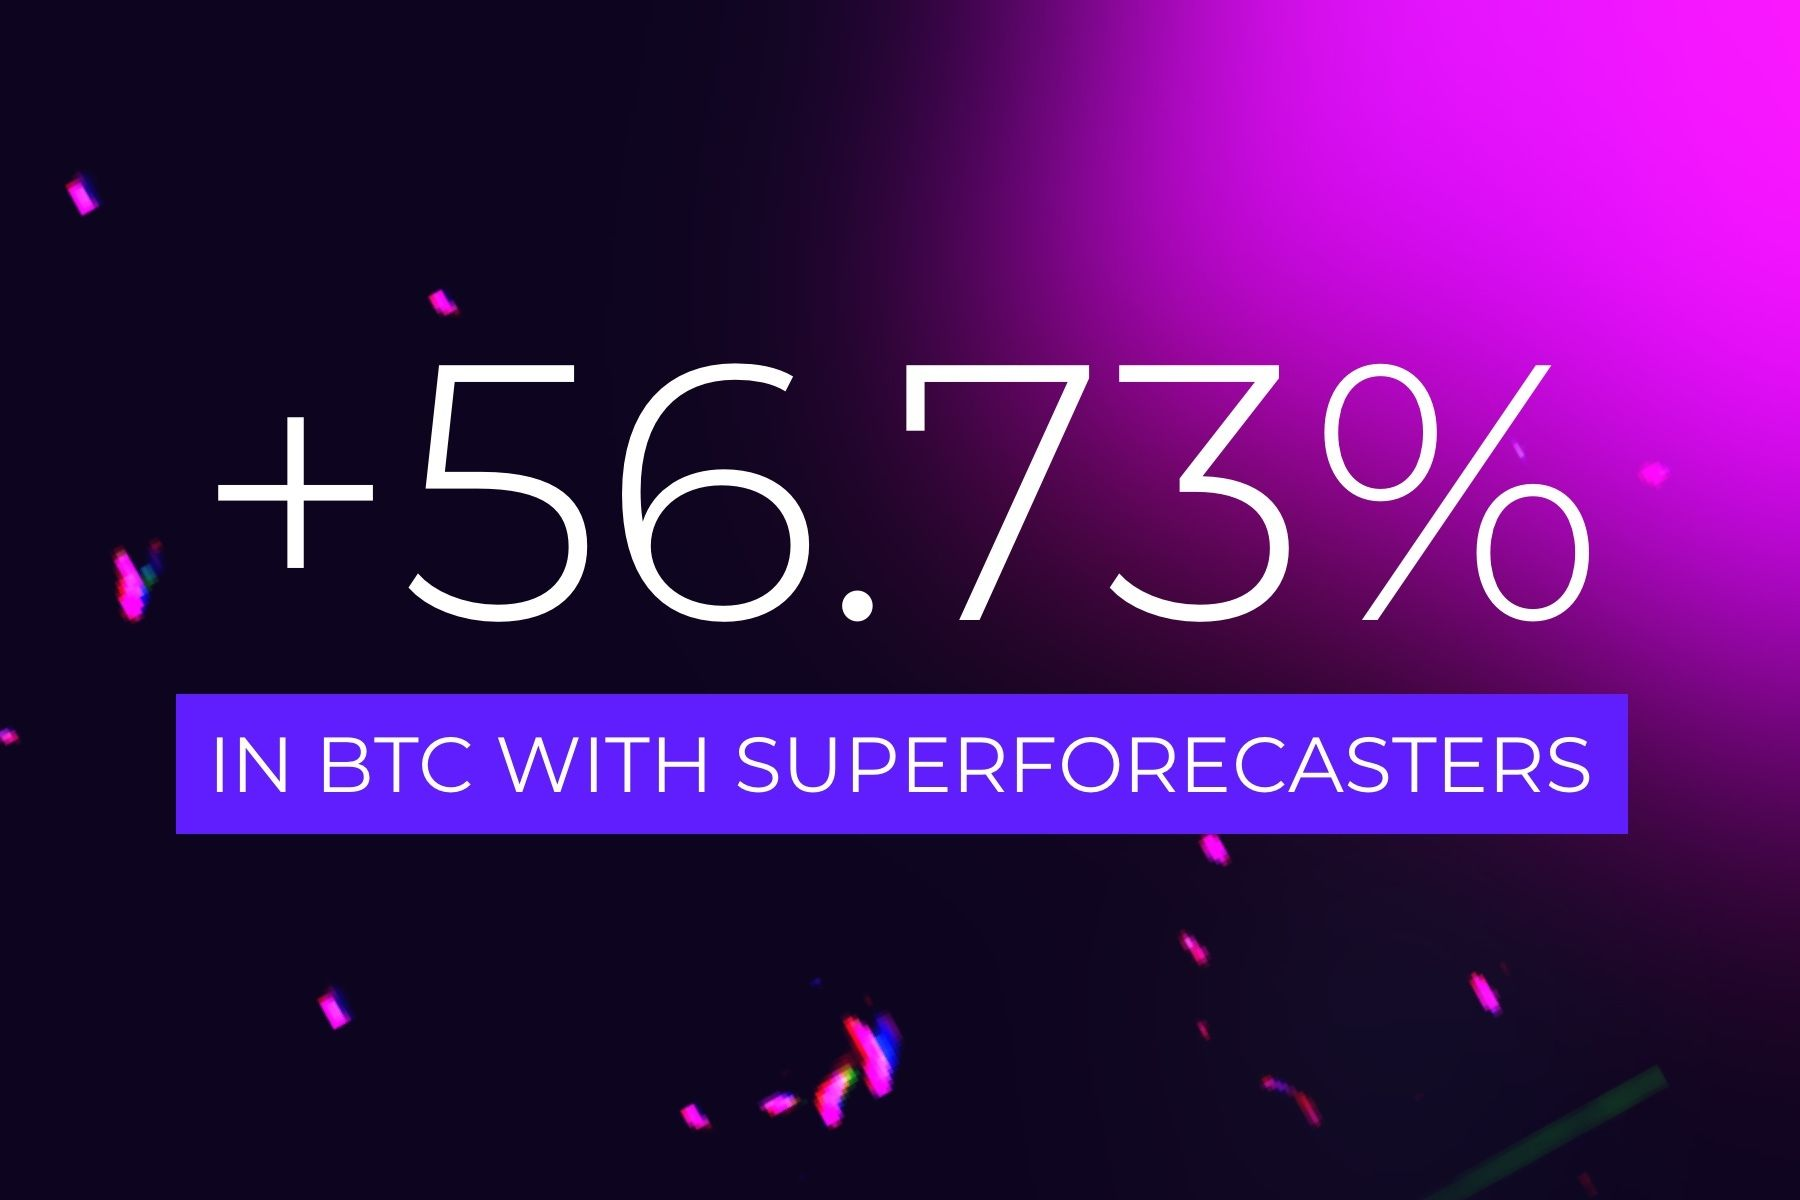 +56.73% in Bitcoin with Cindicator's SuperForecasters signals